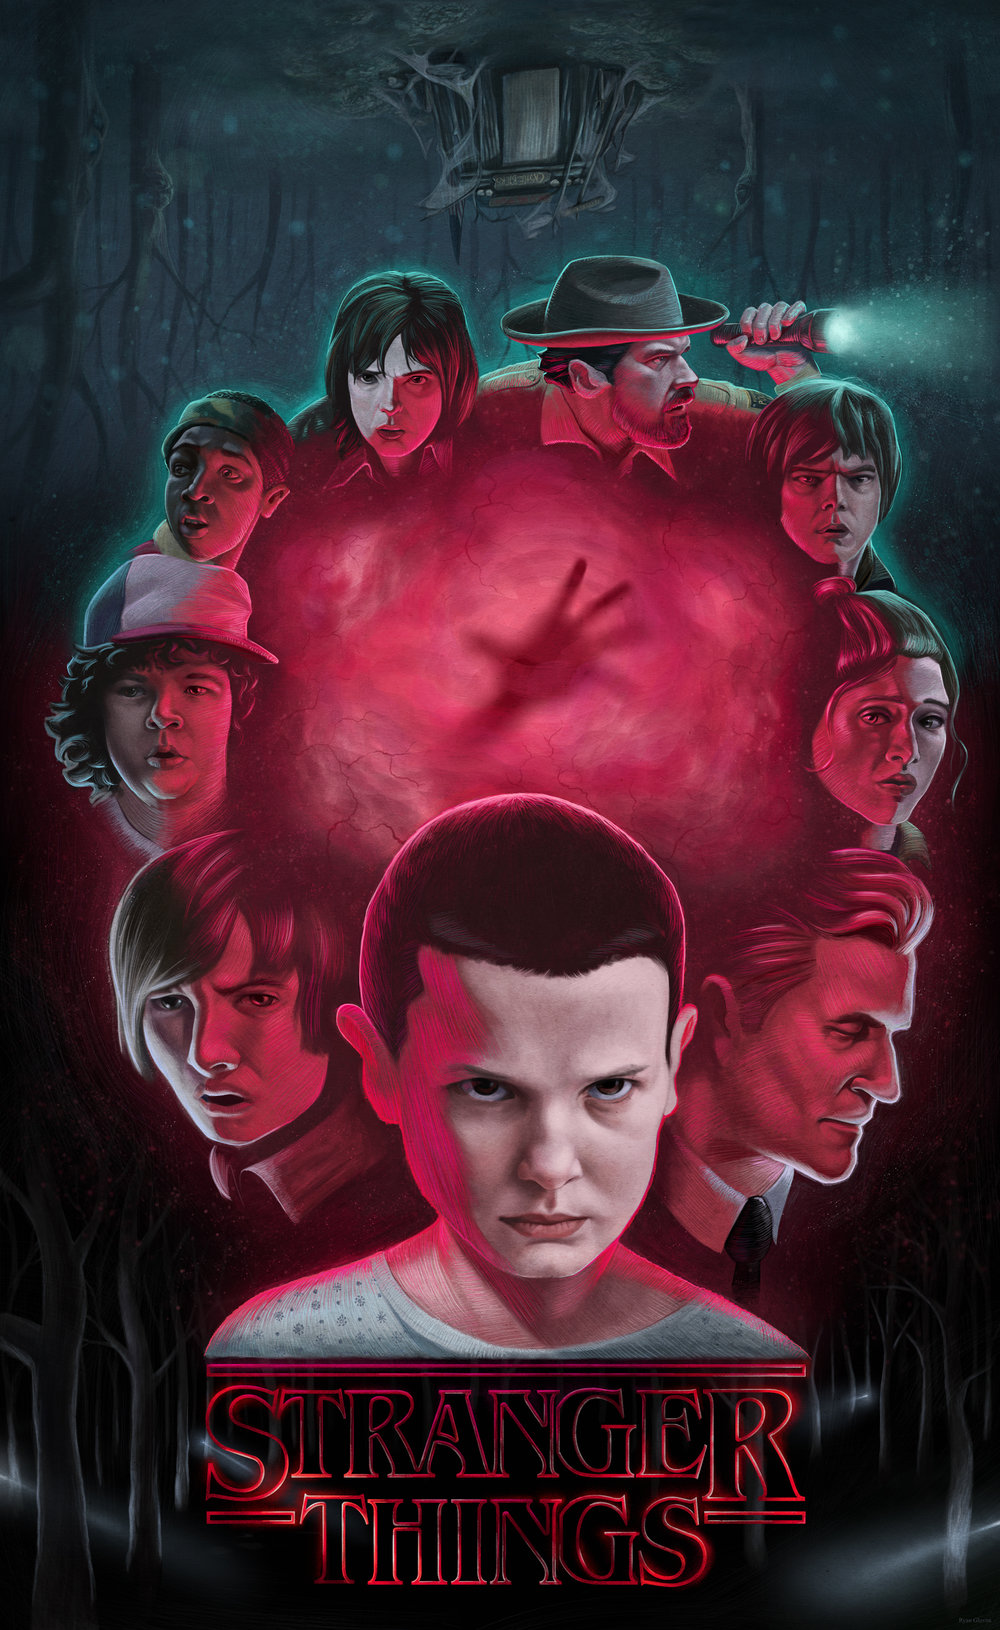 Stranger Things Illustrated Poster